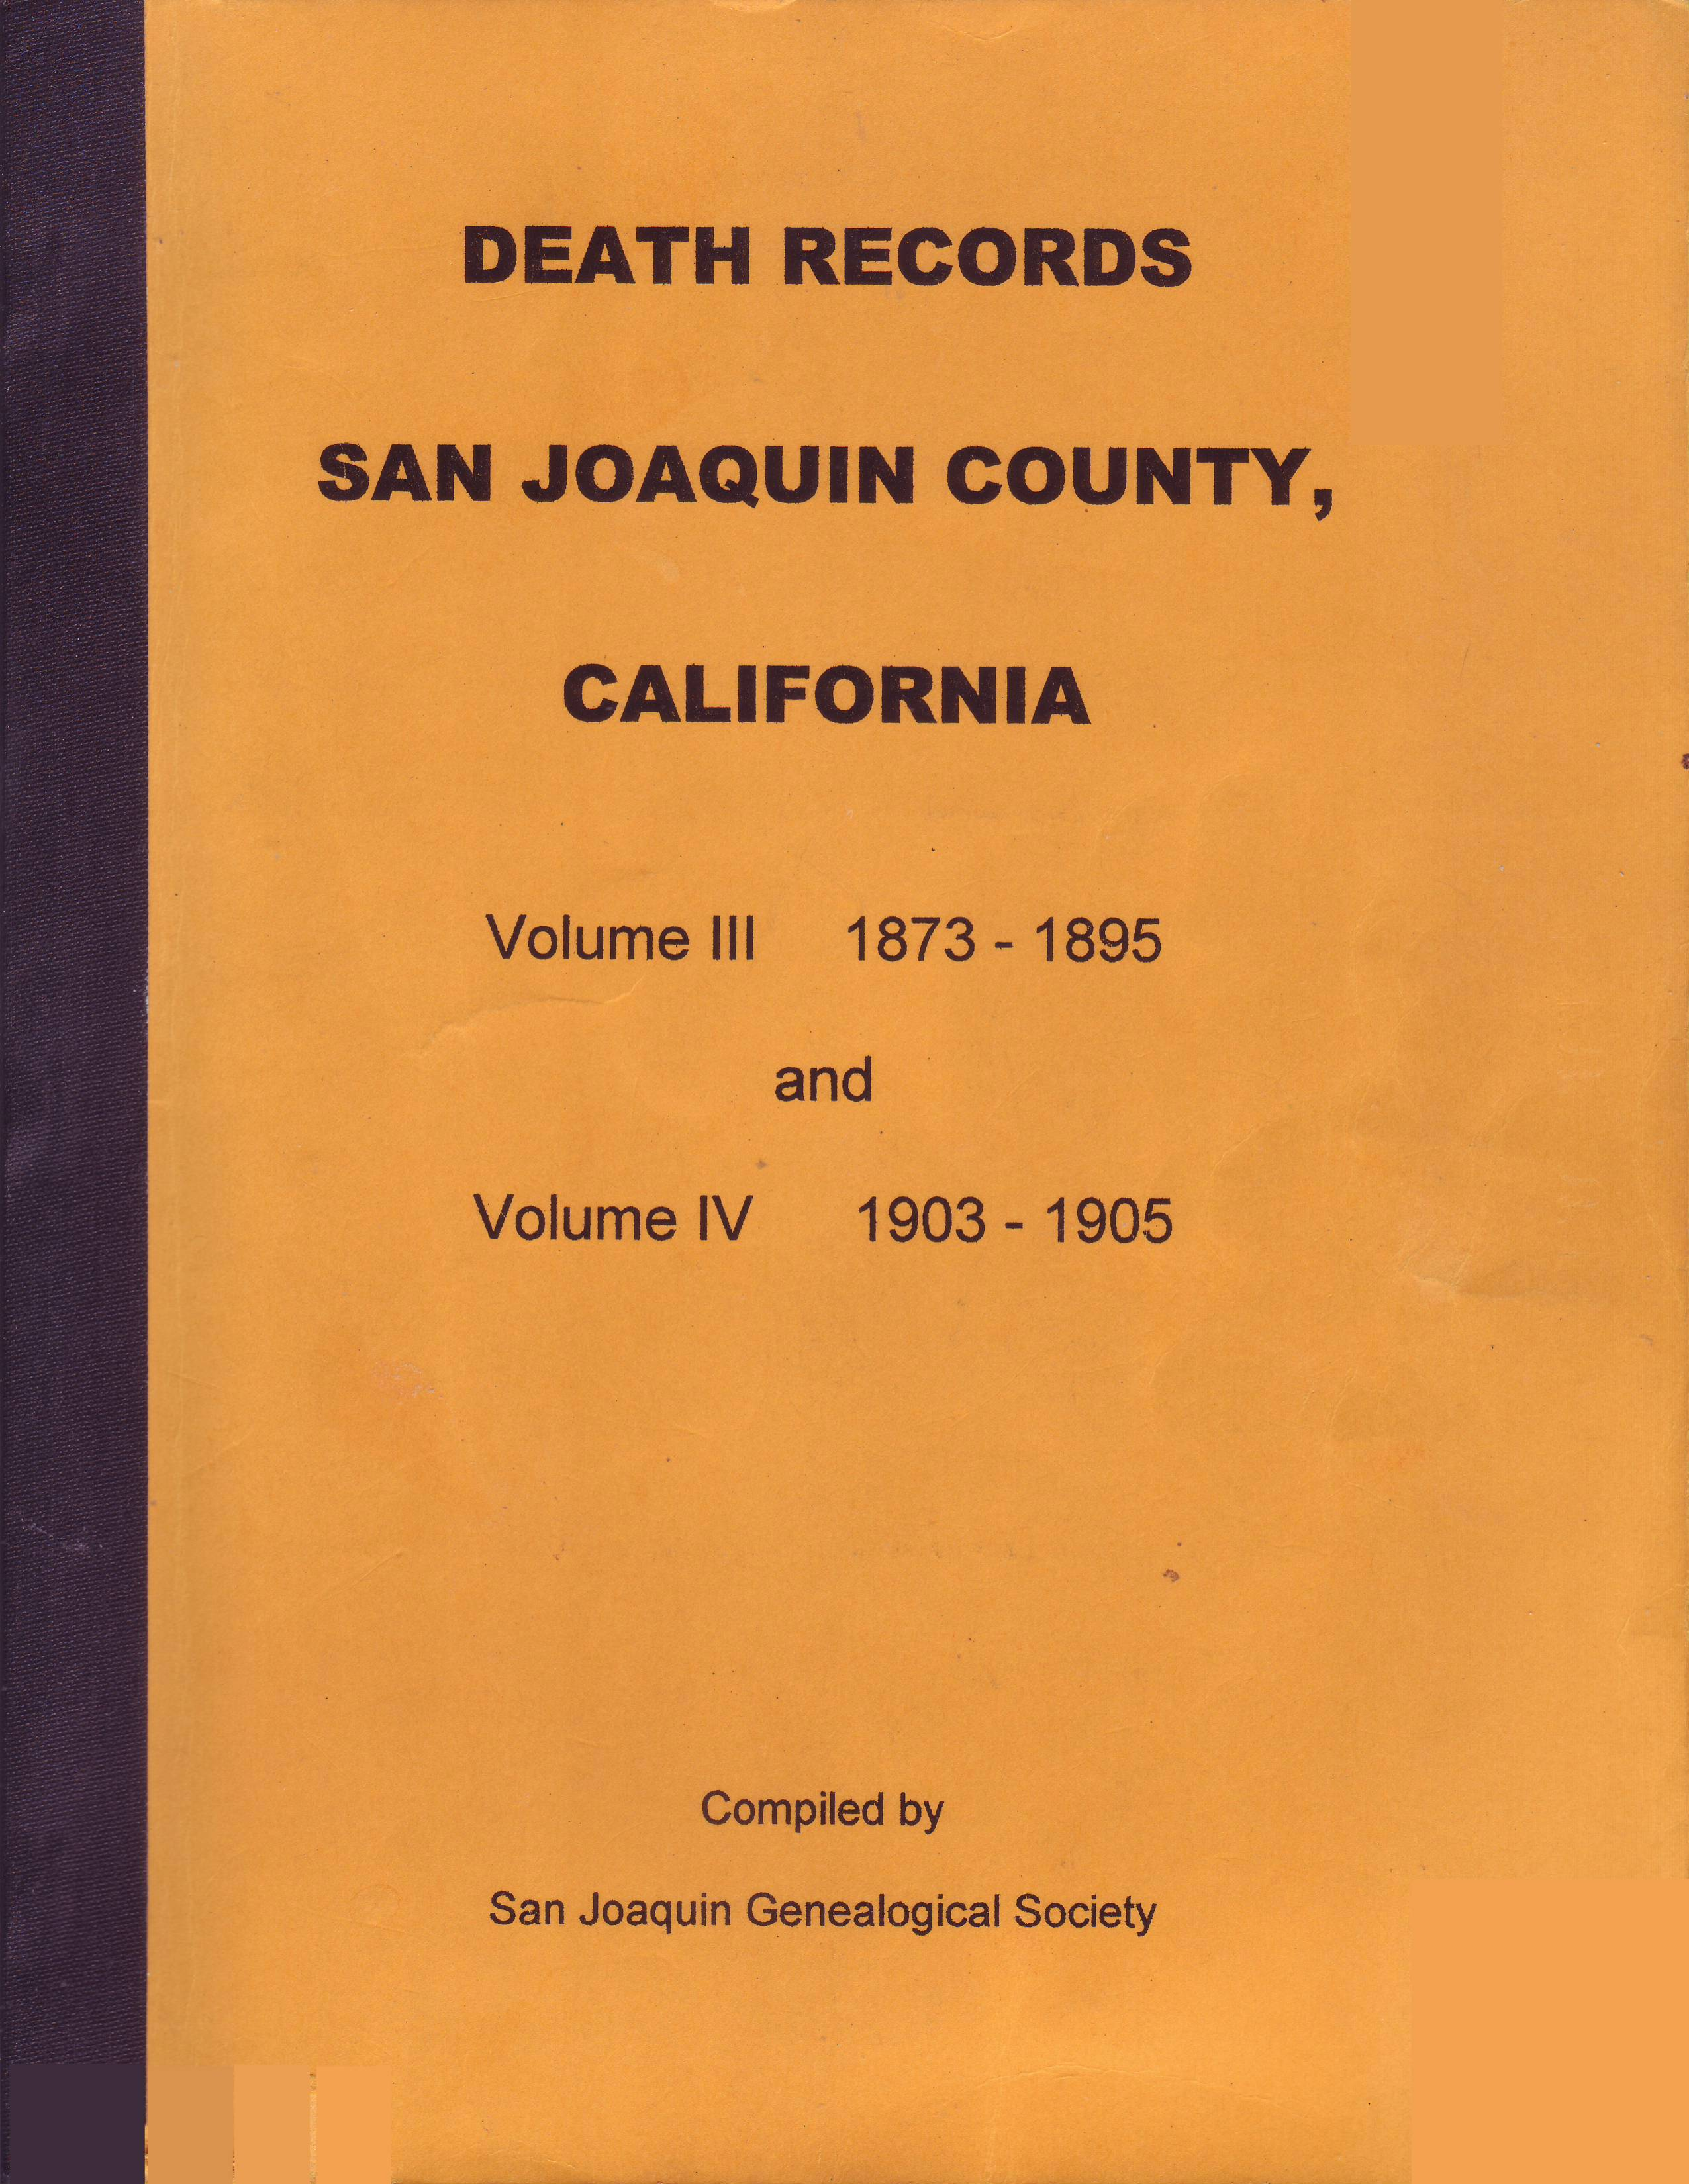 Death Records, San Joaquin County, California, Volume III 1873–1895 and Volume VI 1903–1905